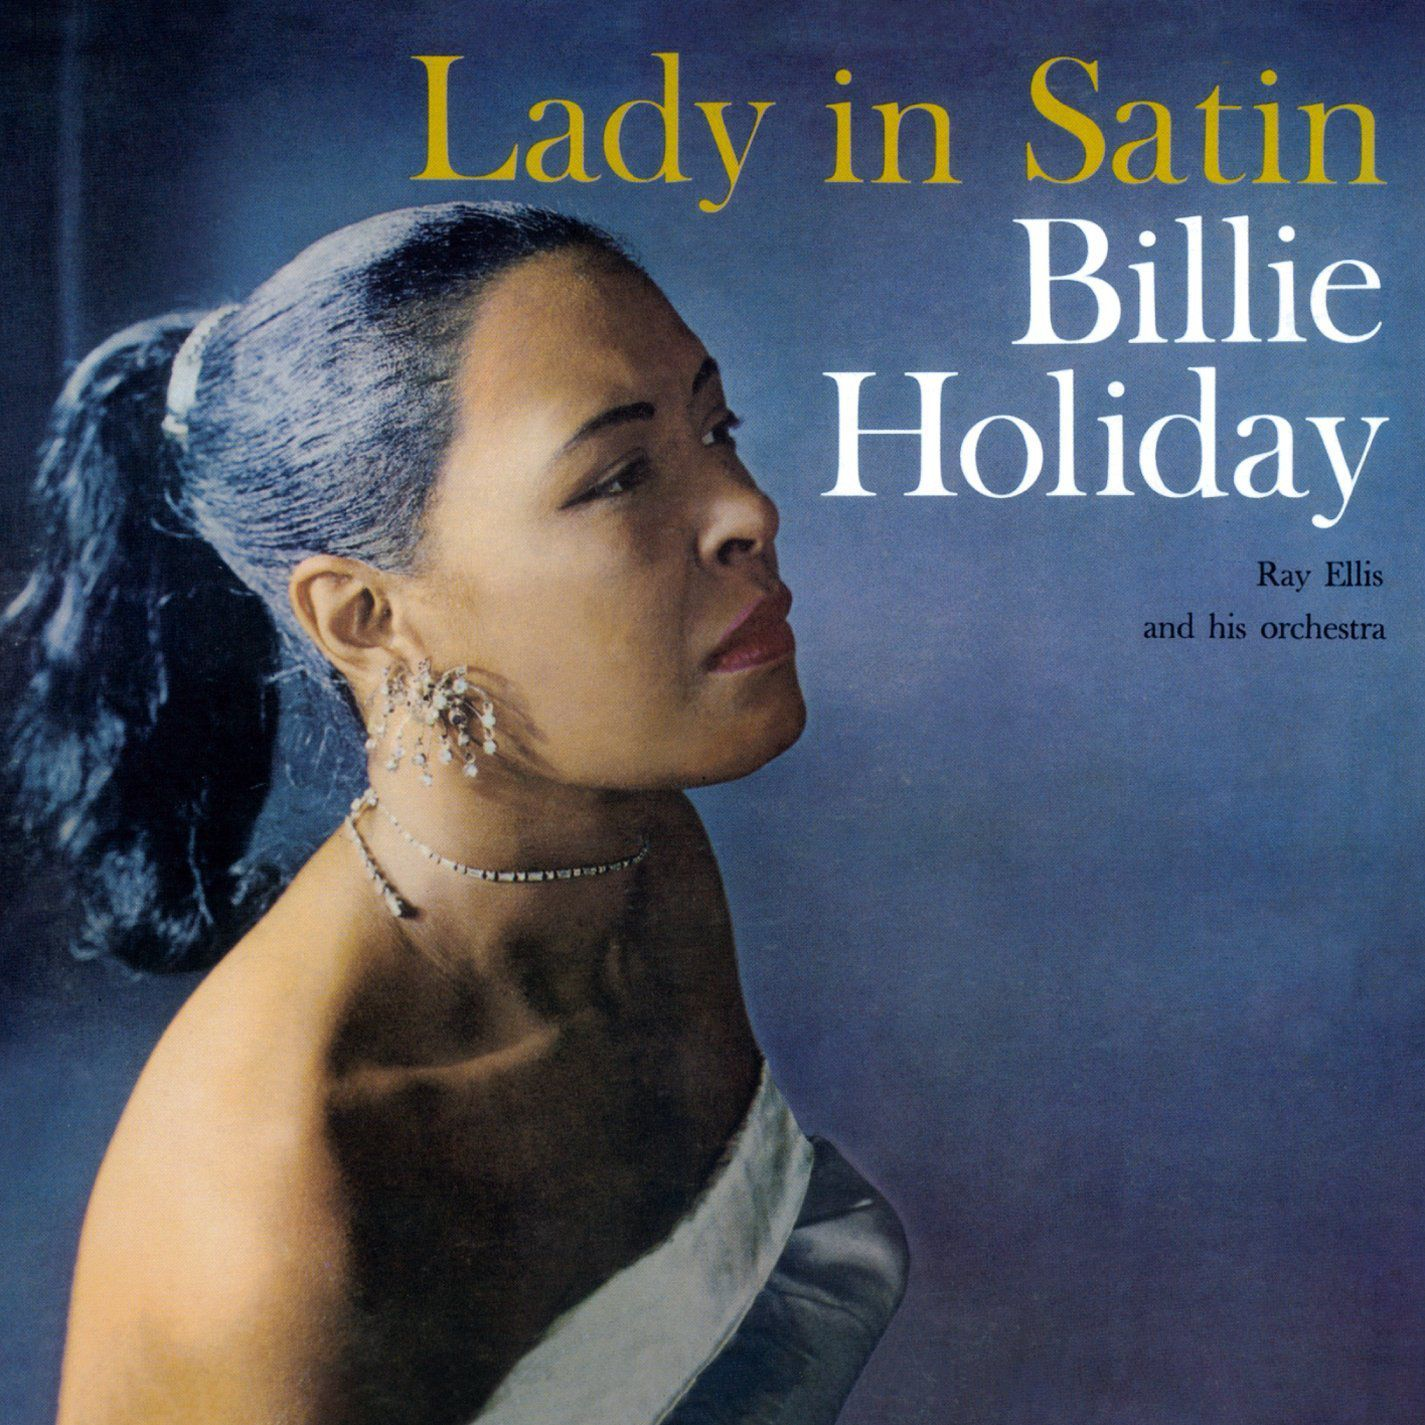 """Billie Holiday """"Lady in Satin"""" (1958)"""